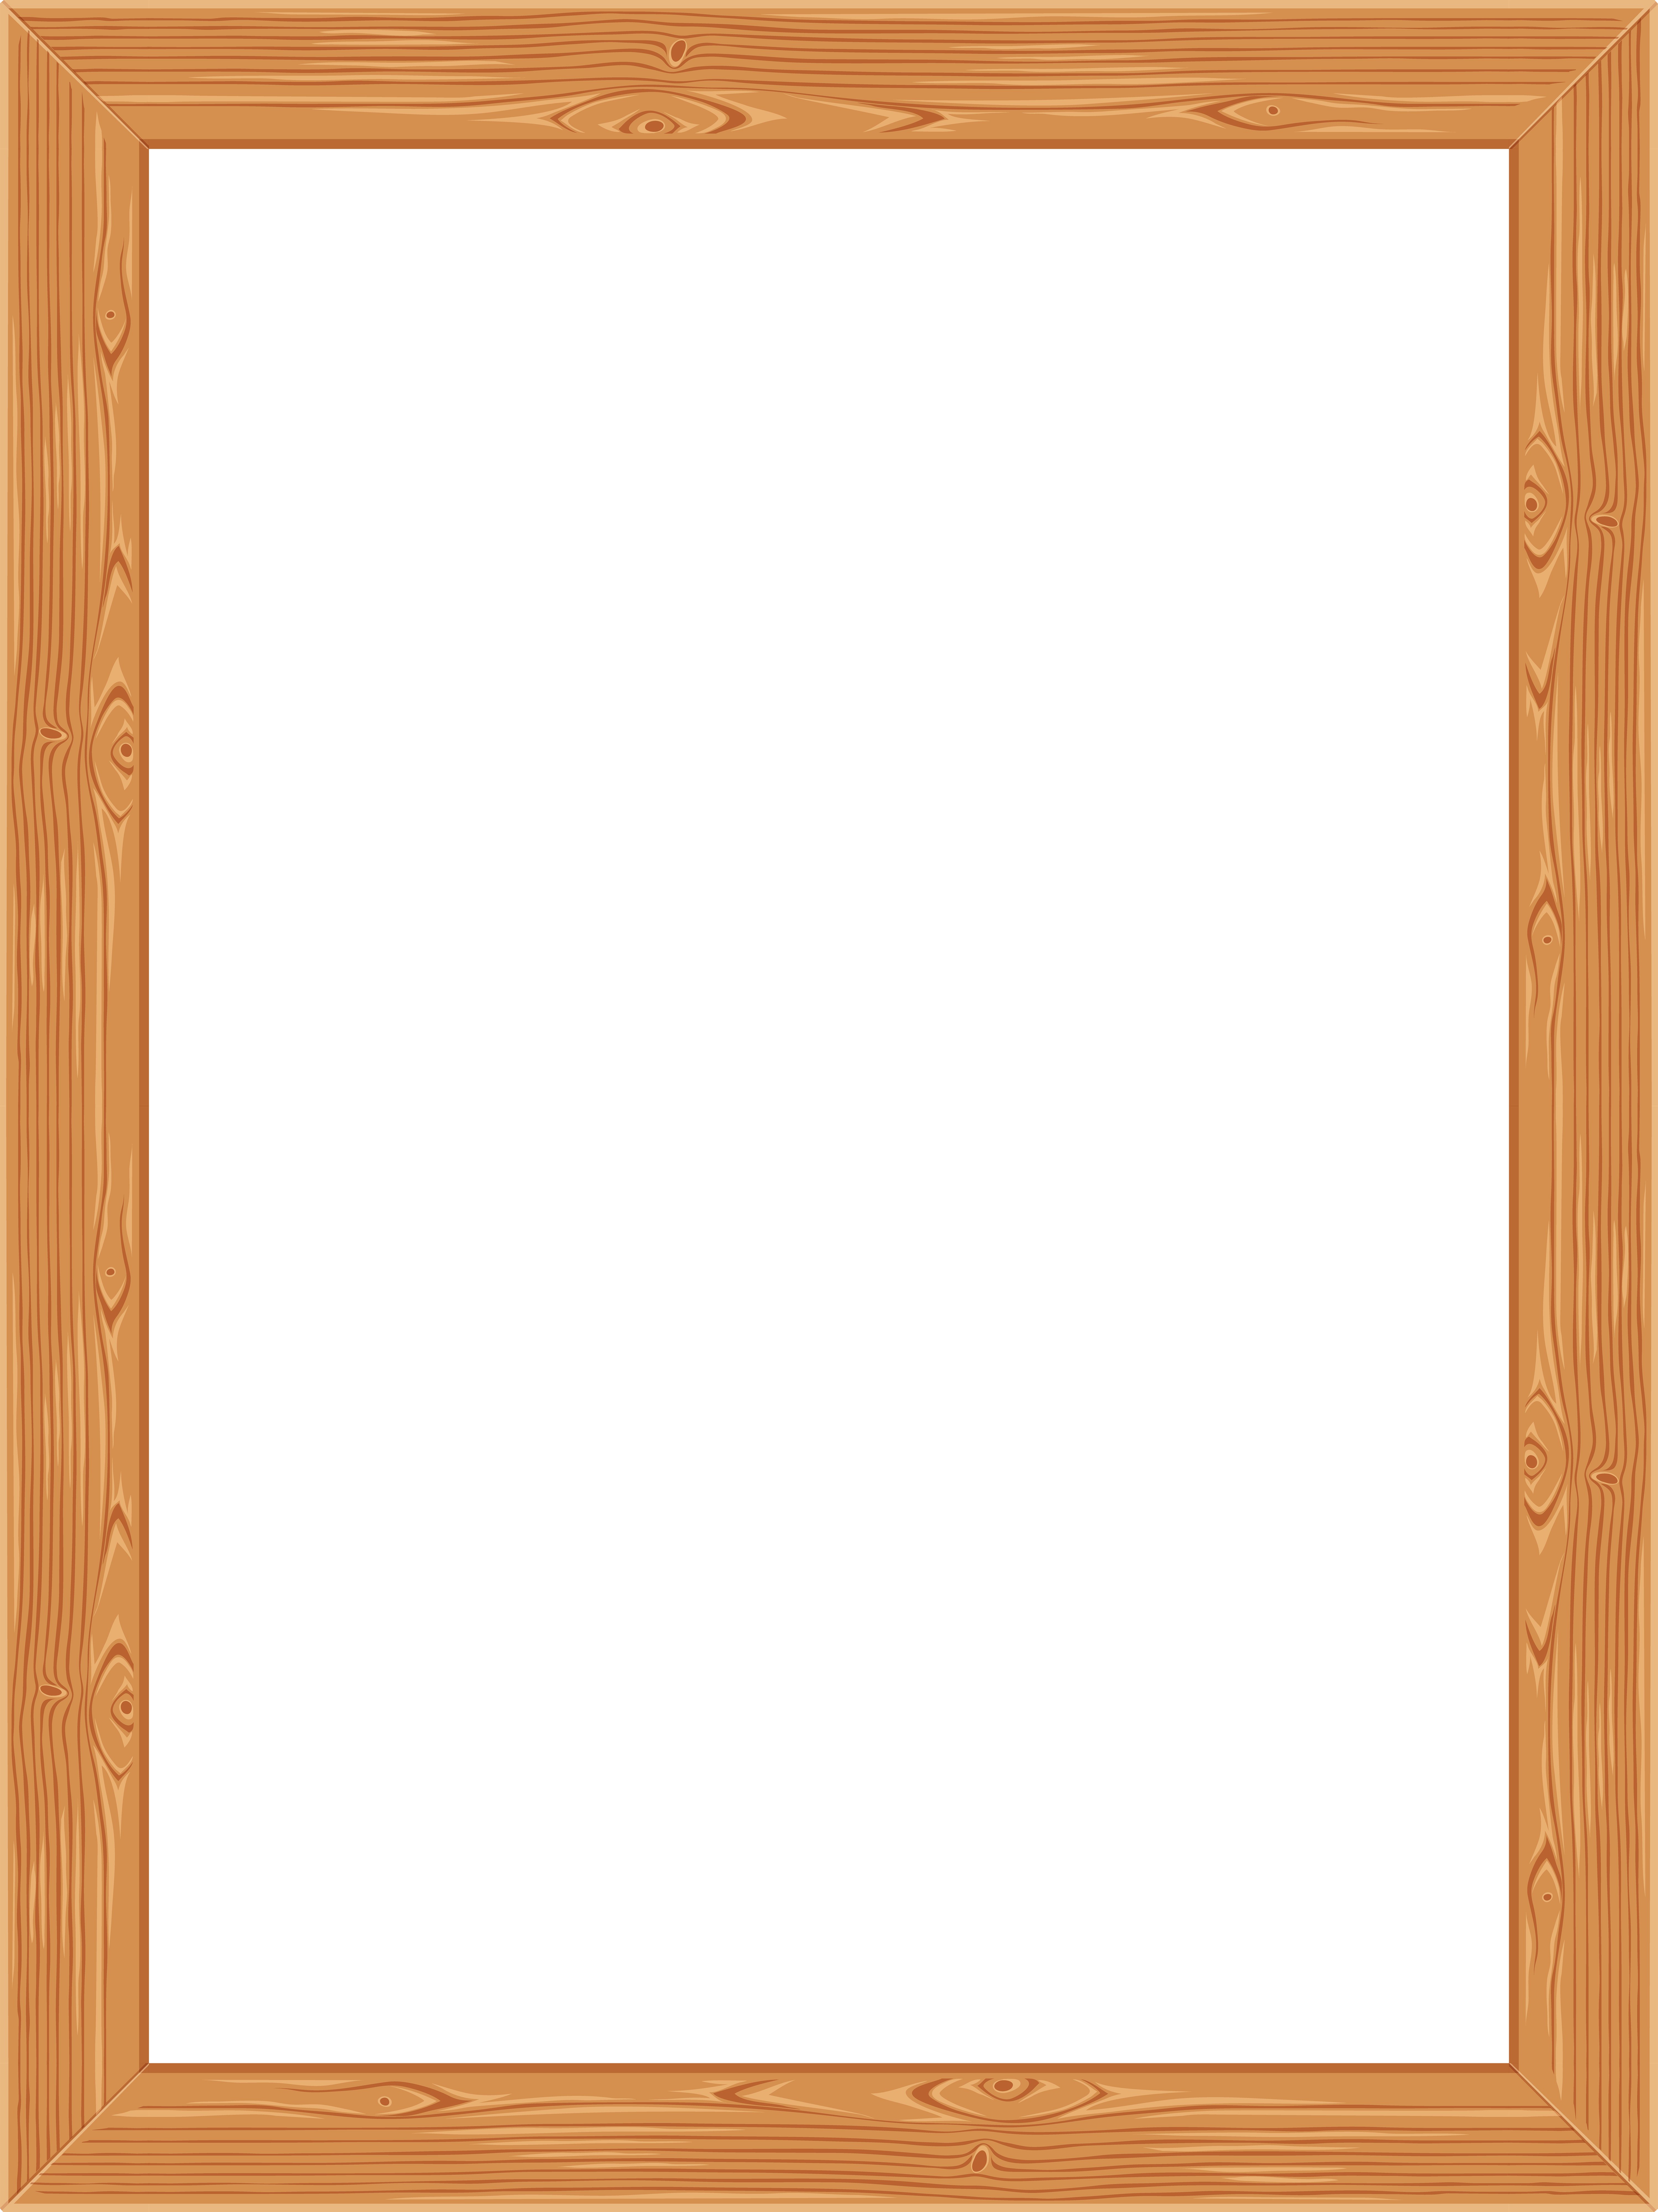 Square wood frame clipart clip royalty free stock Pin by Péterné Marika on Képszerkesztéshez szükséges ... clip royalty free stock